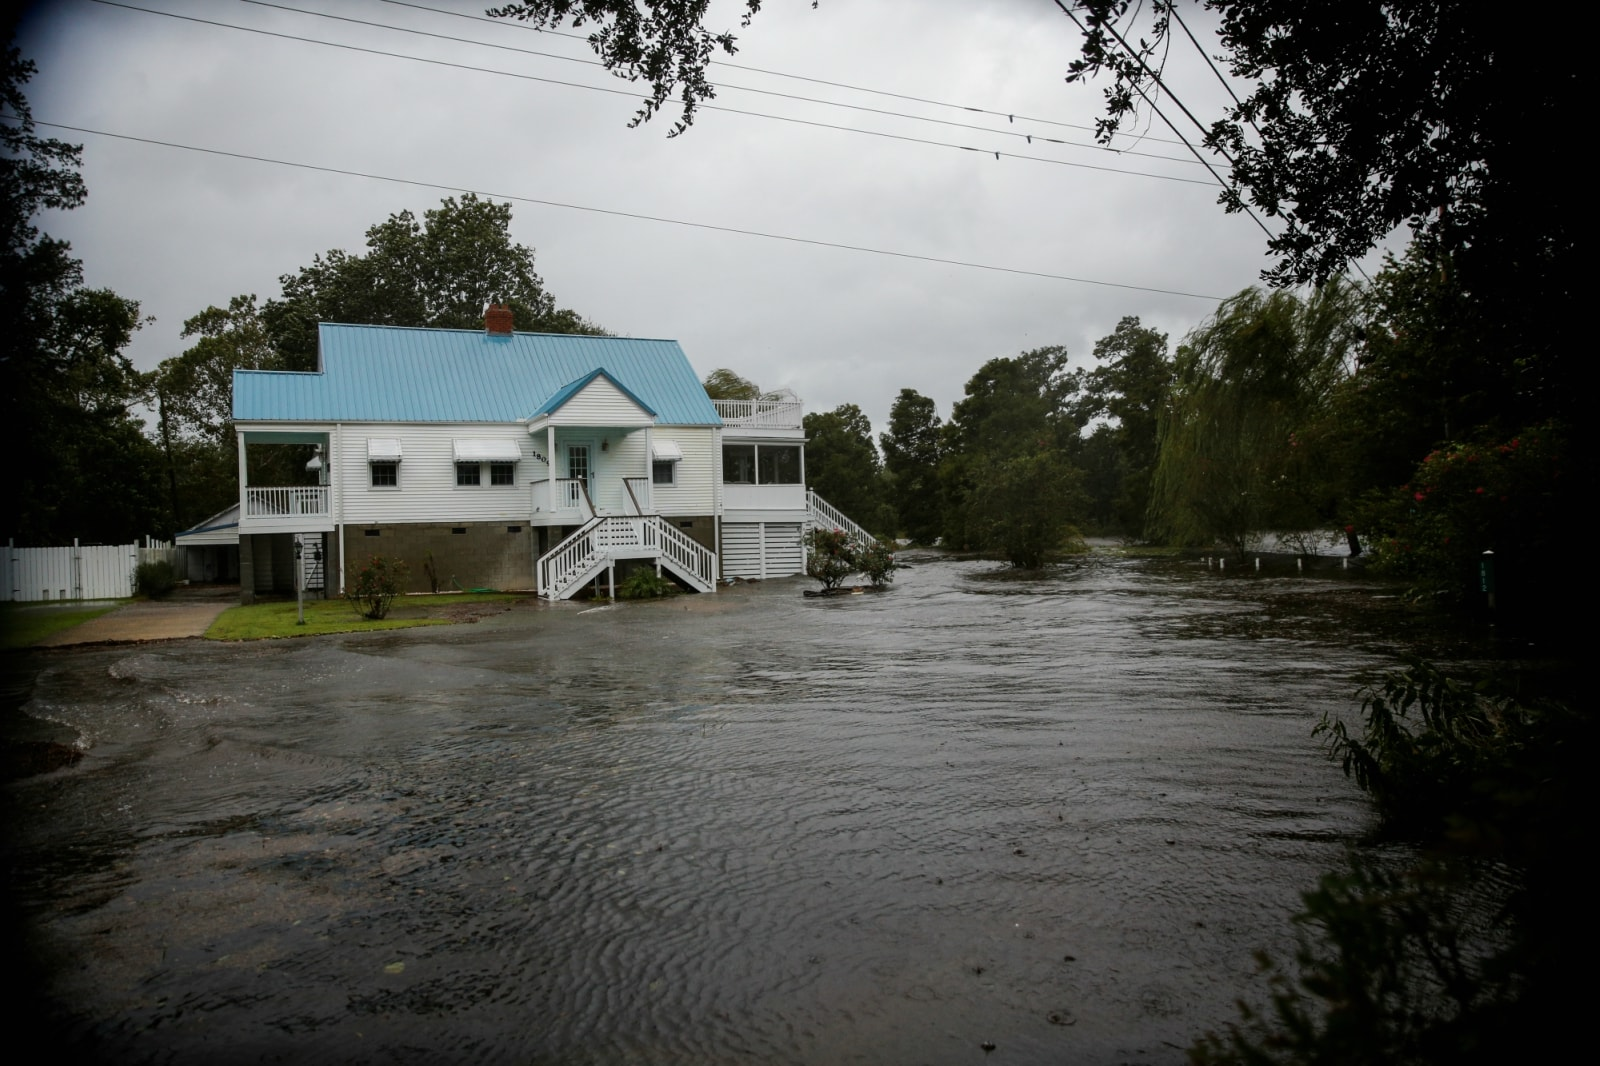 Water from Neuse River floods houses as Hurricane Florence comes ashore in New Bern, North Carolina, US. September 13, 2018. REUTERS/Eduardo Munoz